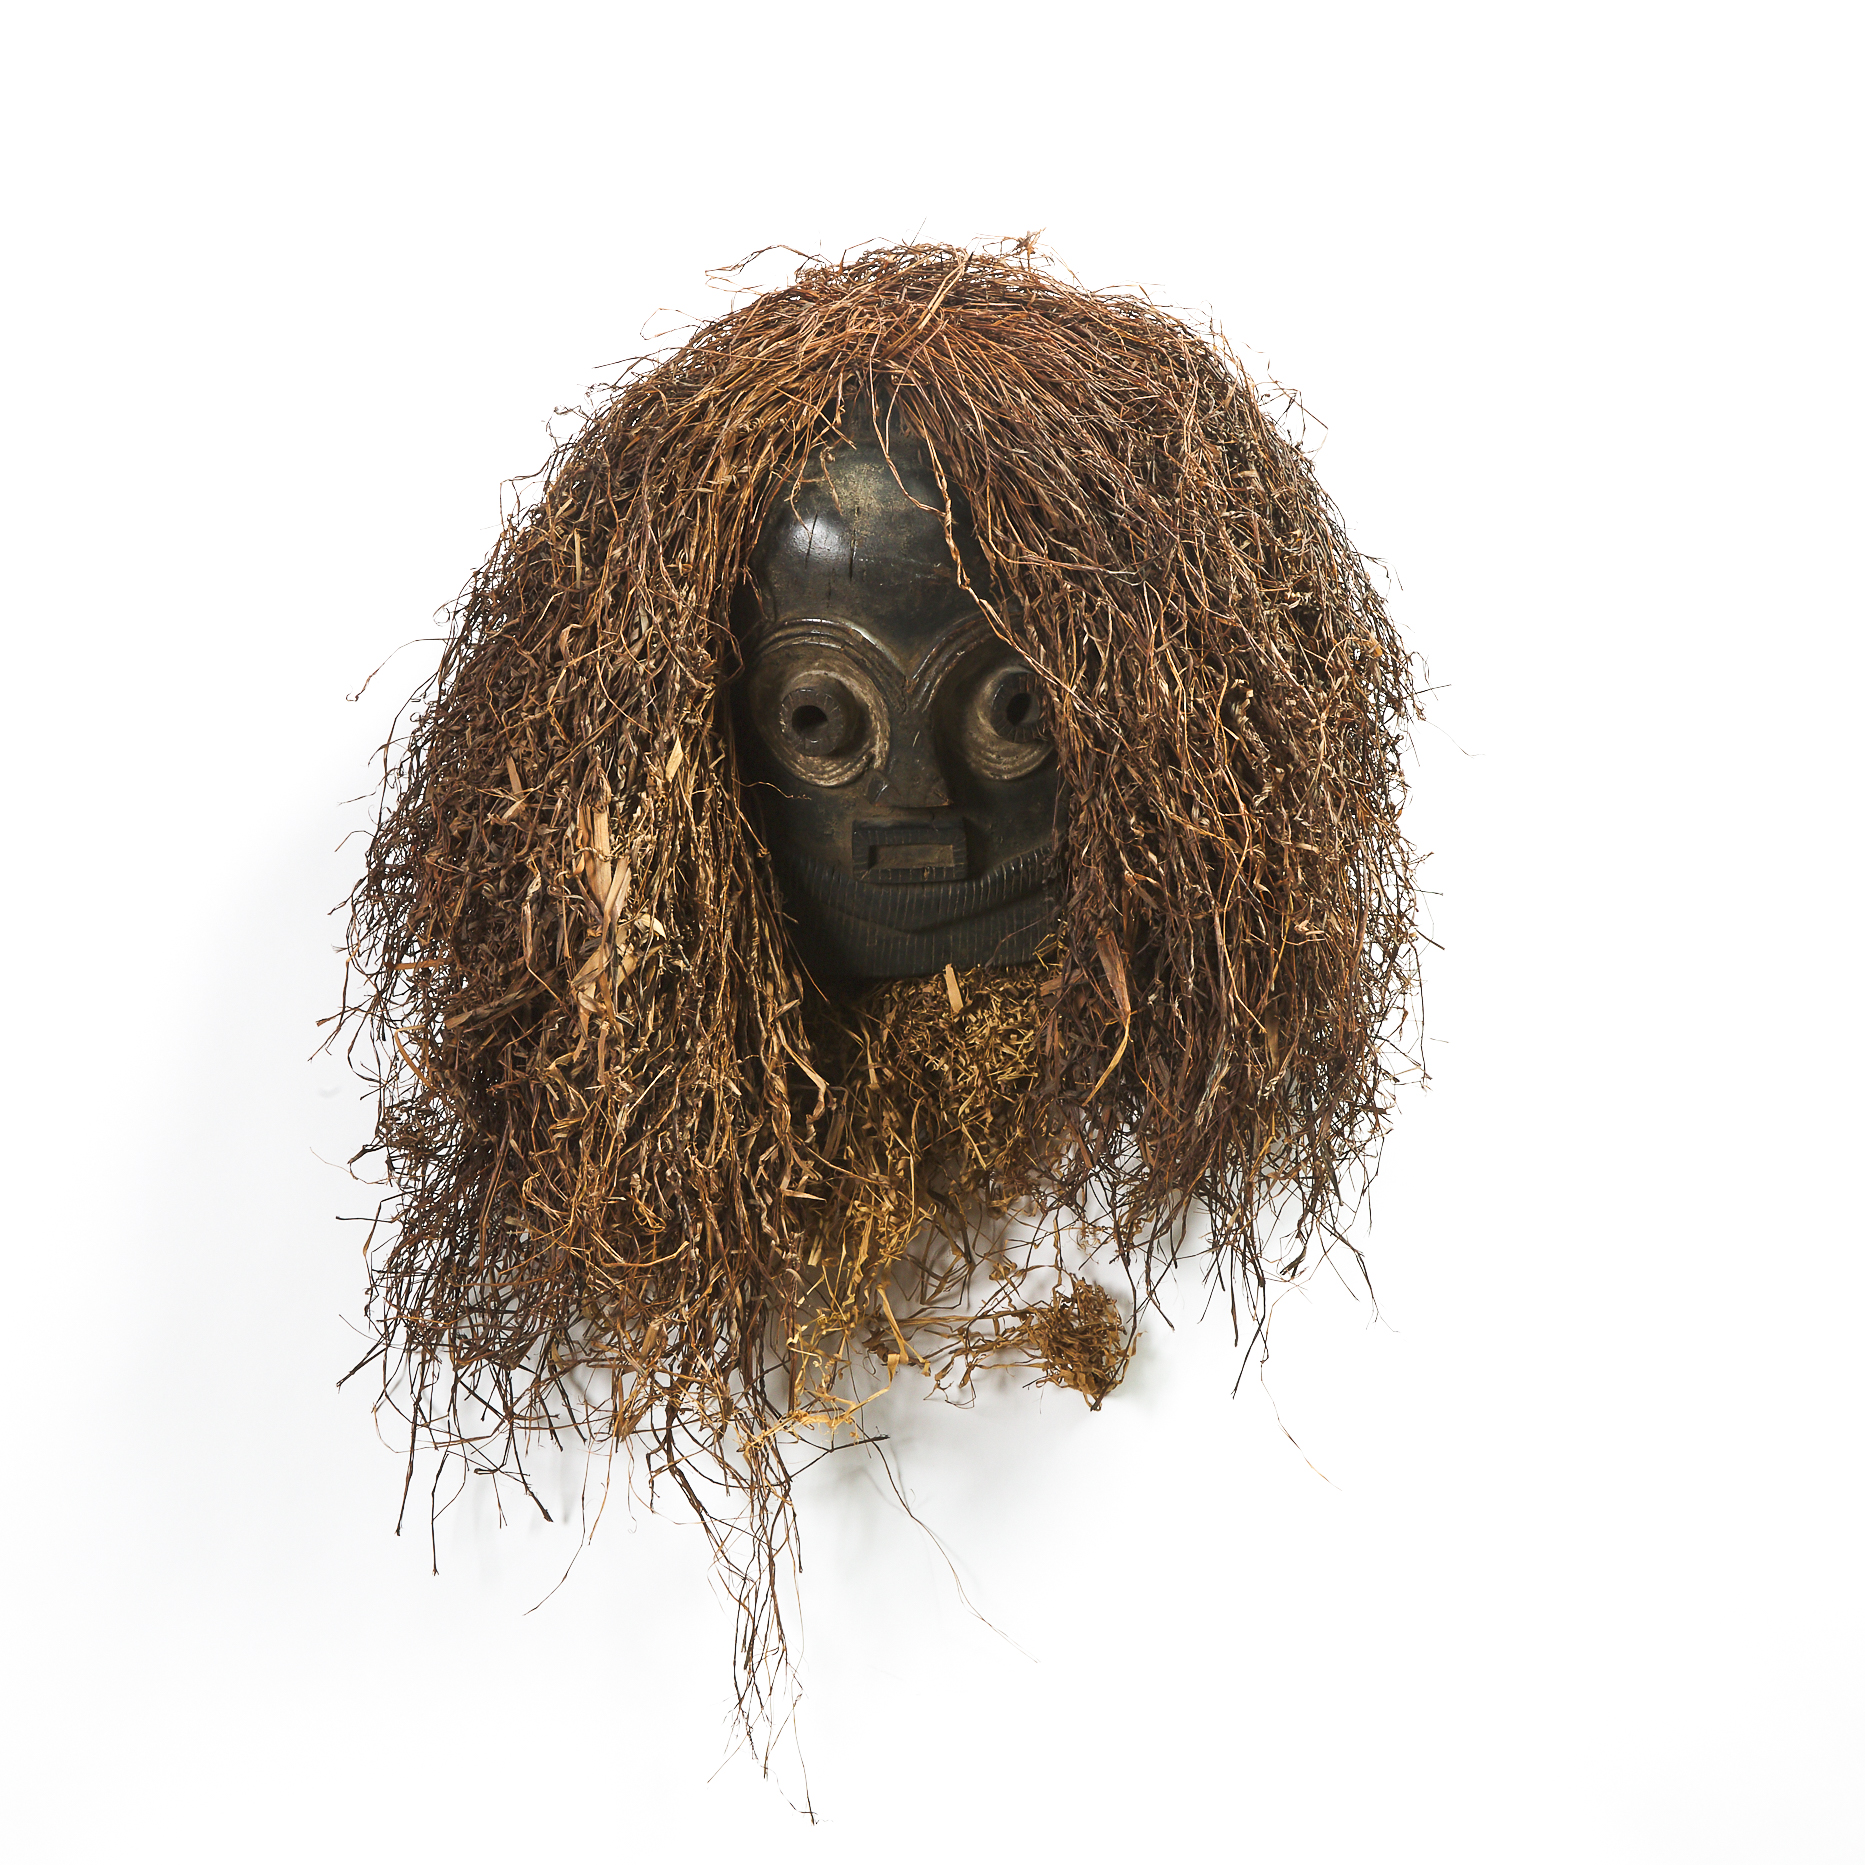 Basikasingo Bembe Mask, Democratic Republic of Congo, Central Africa, early to mid 20th century